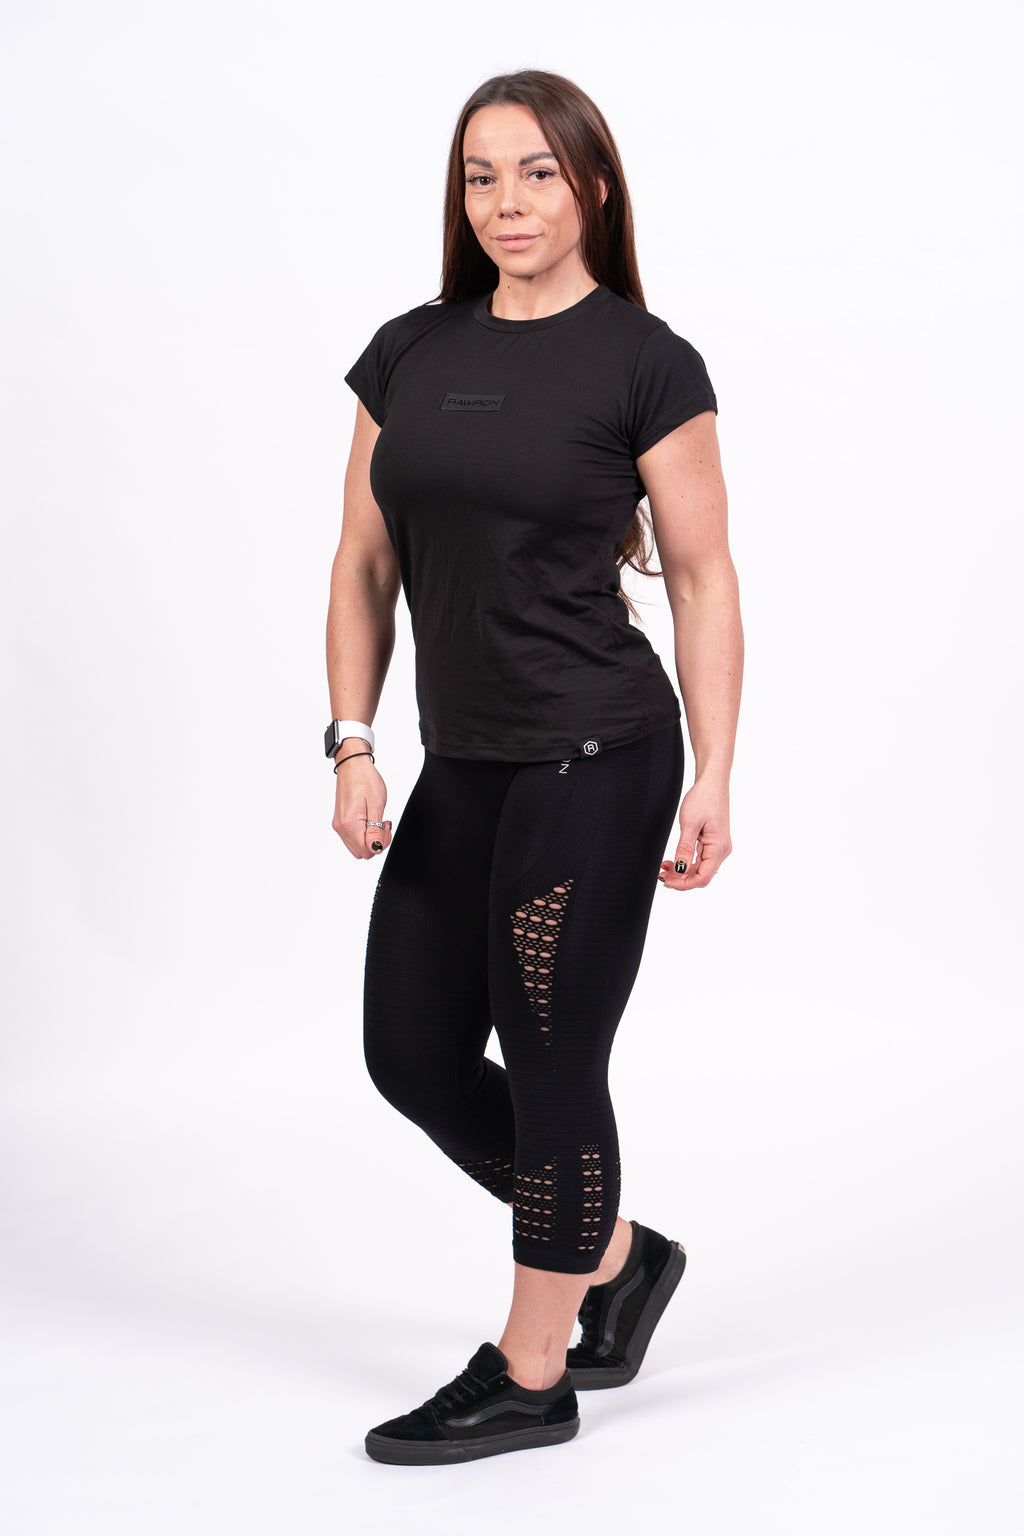 Womens Blackout Tee - Black